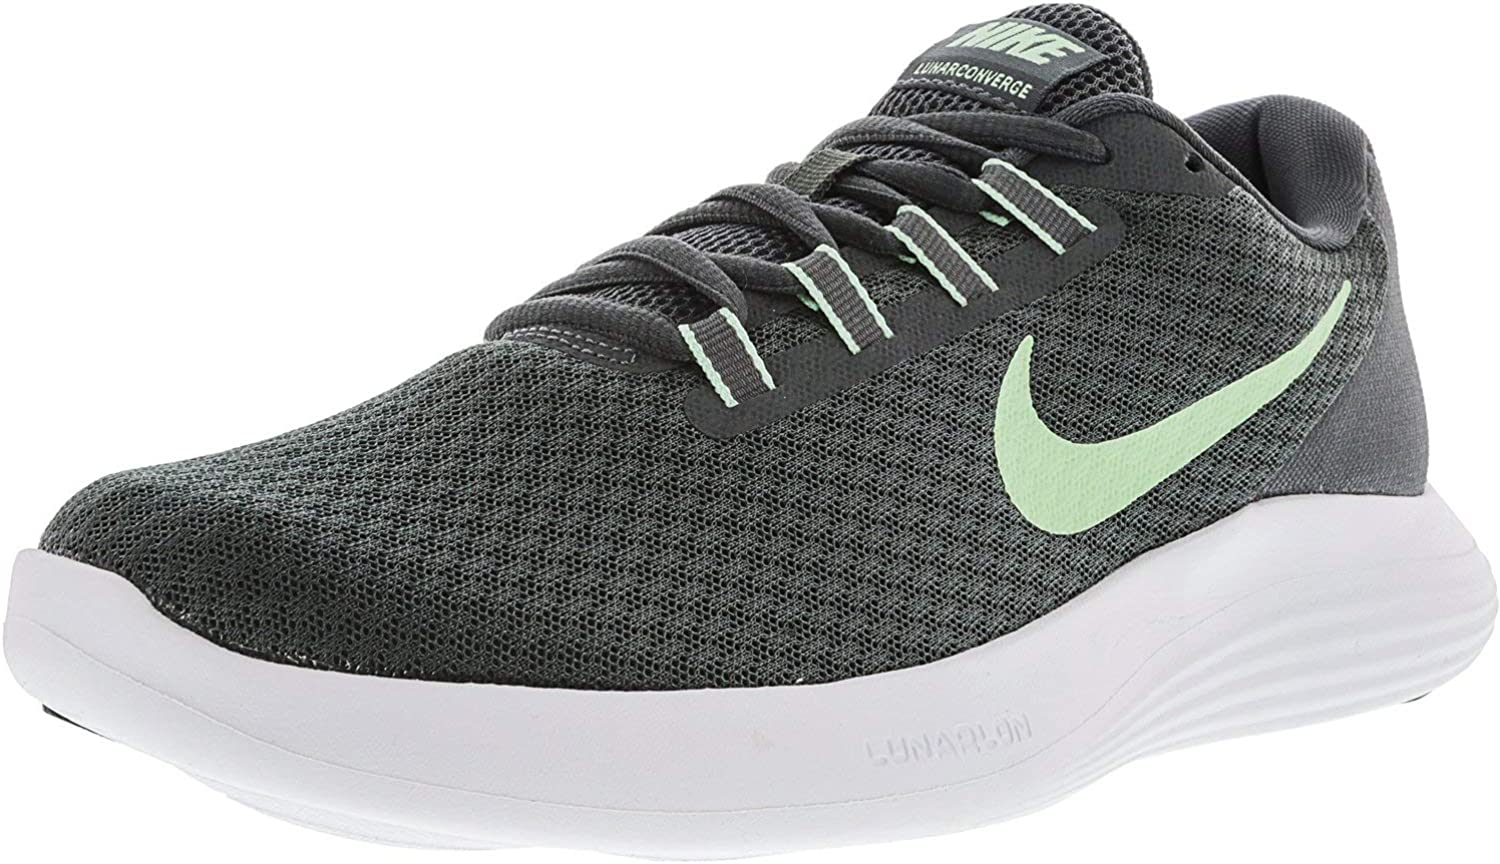 NIKE Lunarconverge Dark Grey Womens 9.5